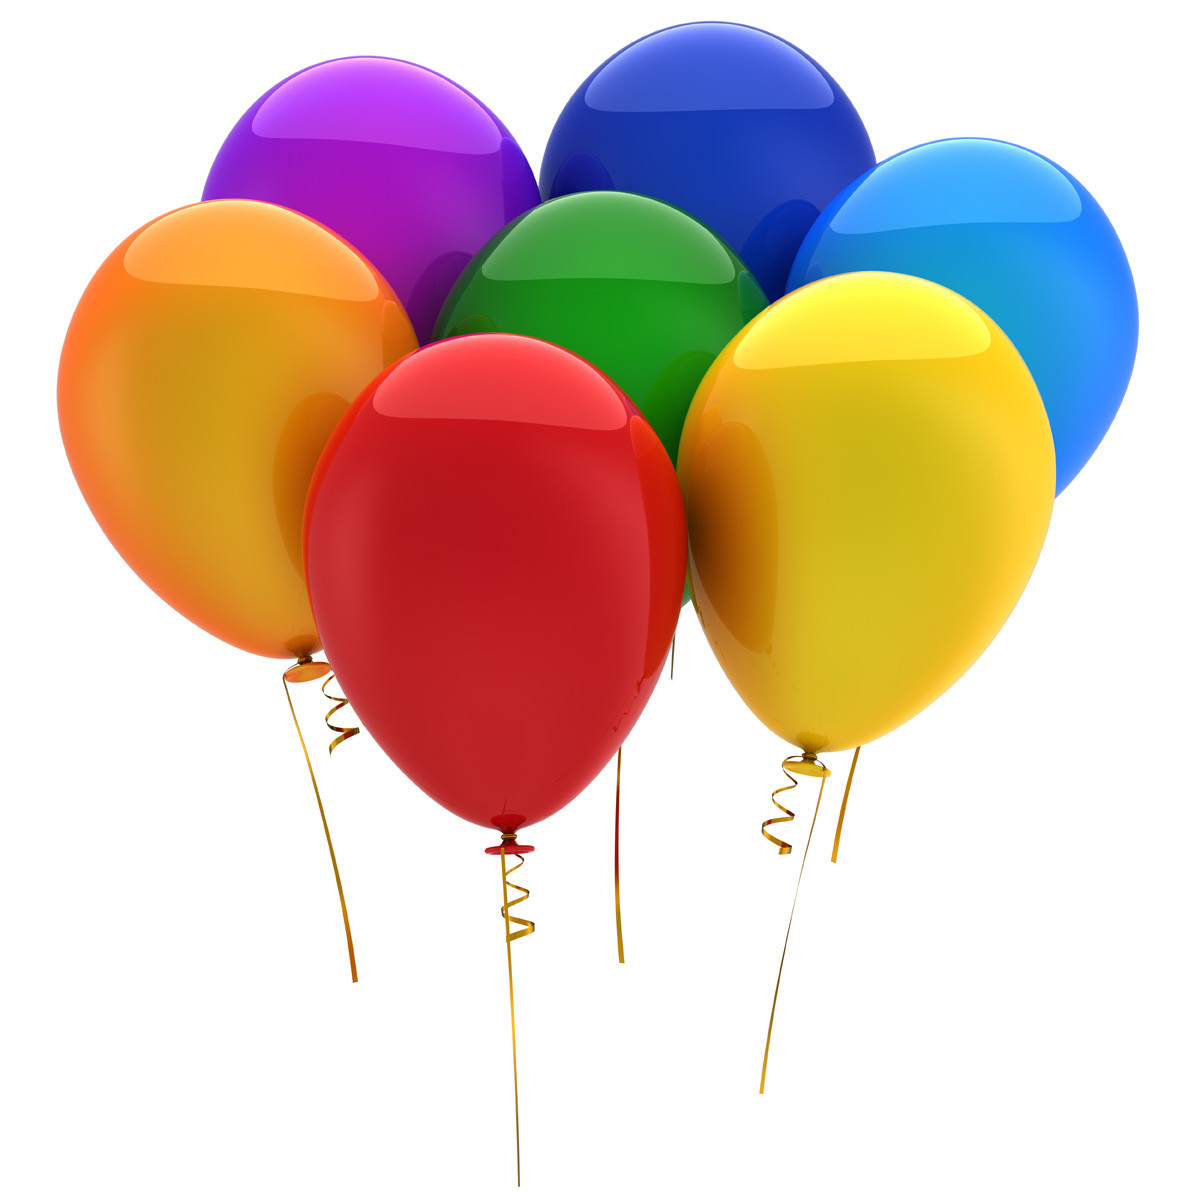 Balloon images balloon invitations pictures for What to do with balloons